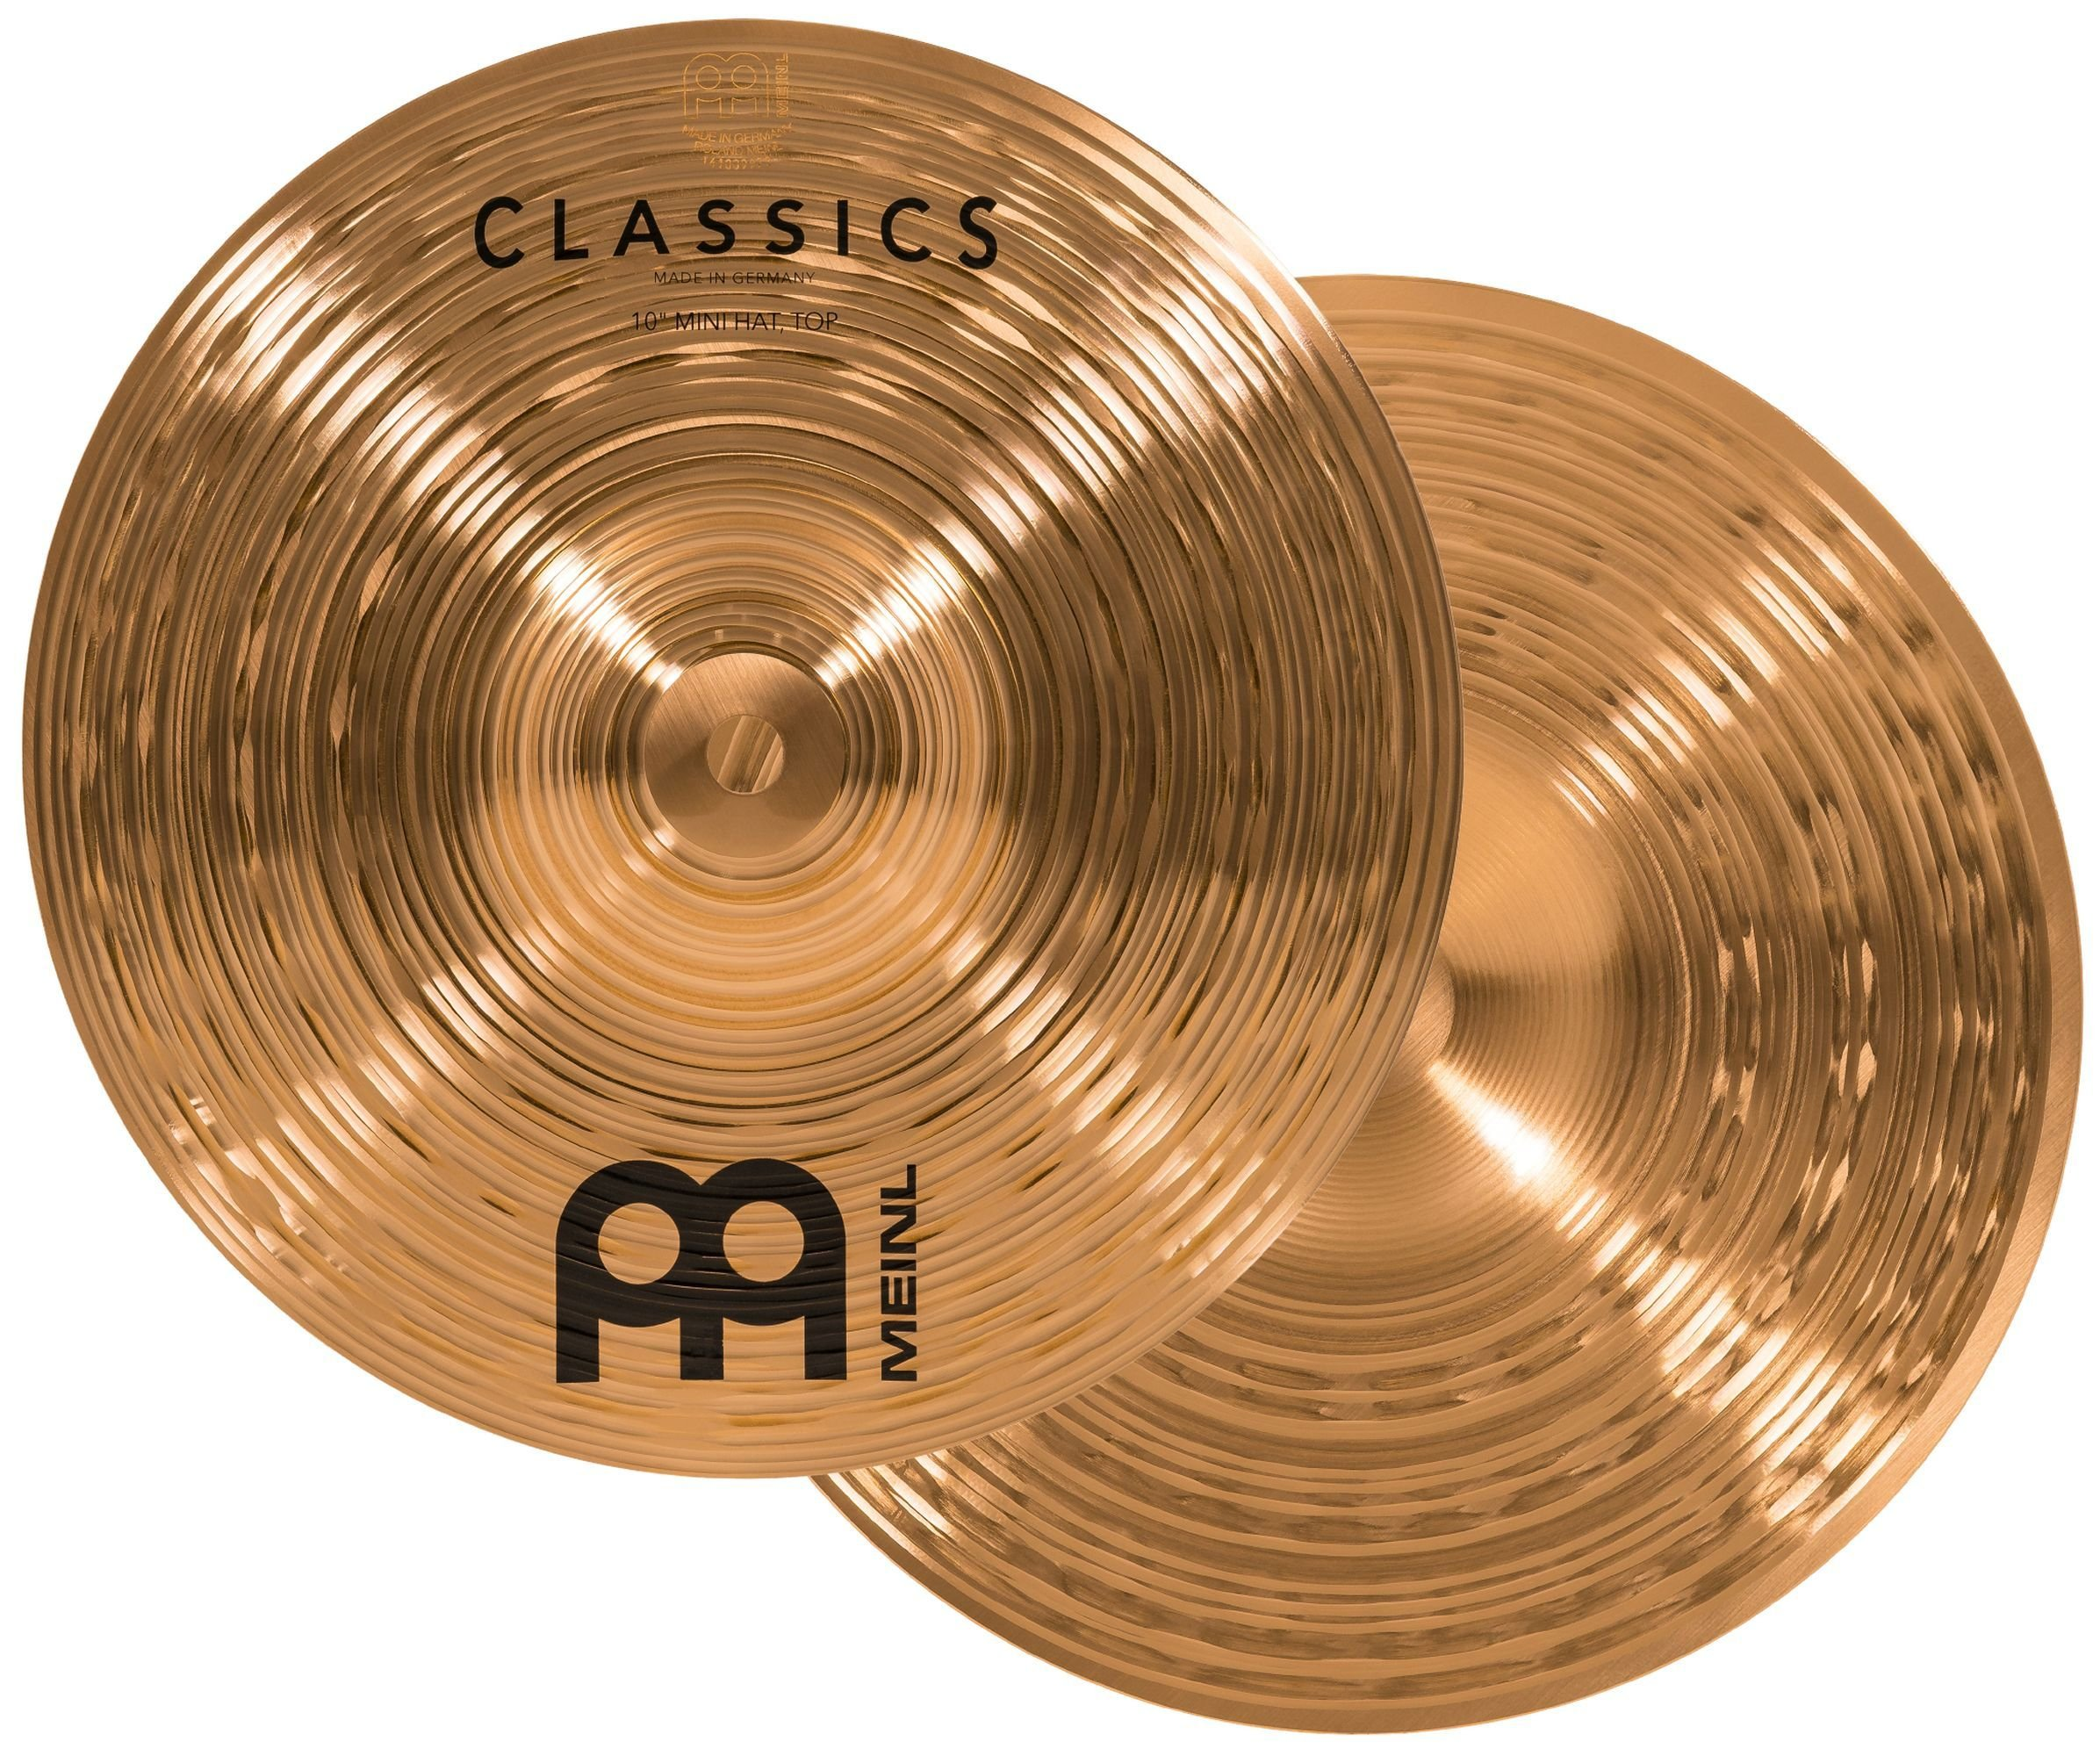 Meinl 10'' Mini Hihat (Hi Hat) Cymbal Pair - Classics Traditional - Made in Germany, 2-YEAR WARRANTY (C10MH) by Meinl Cymbals